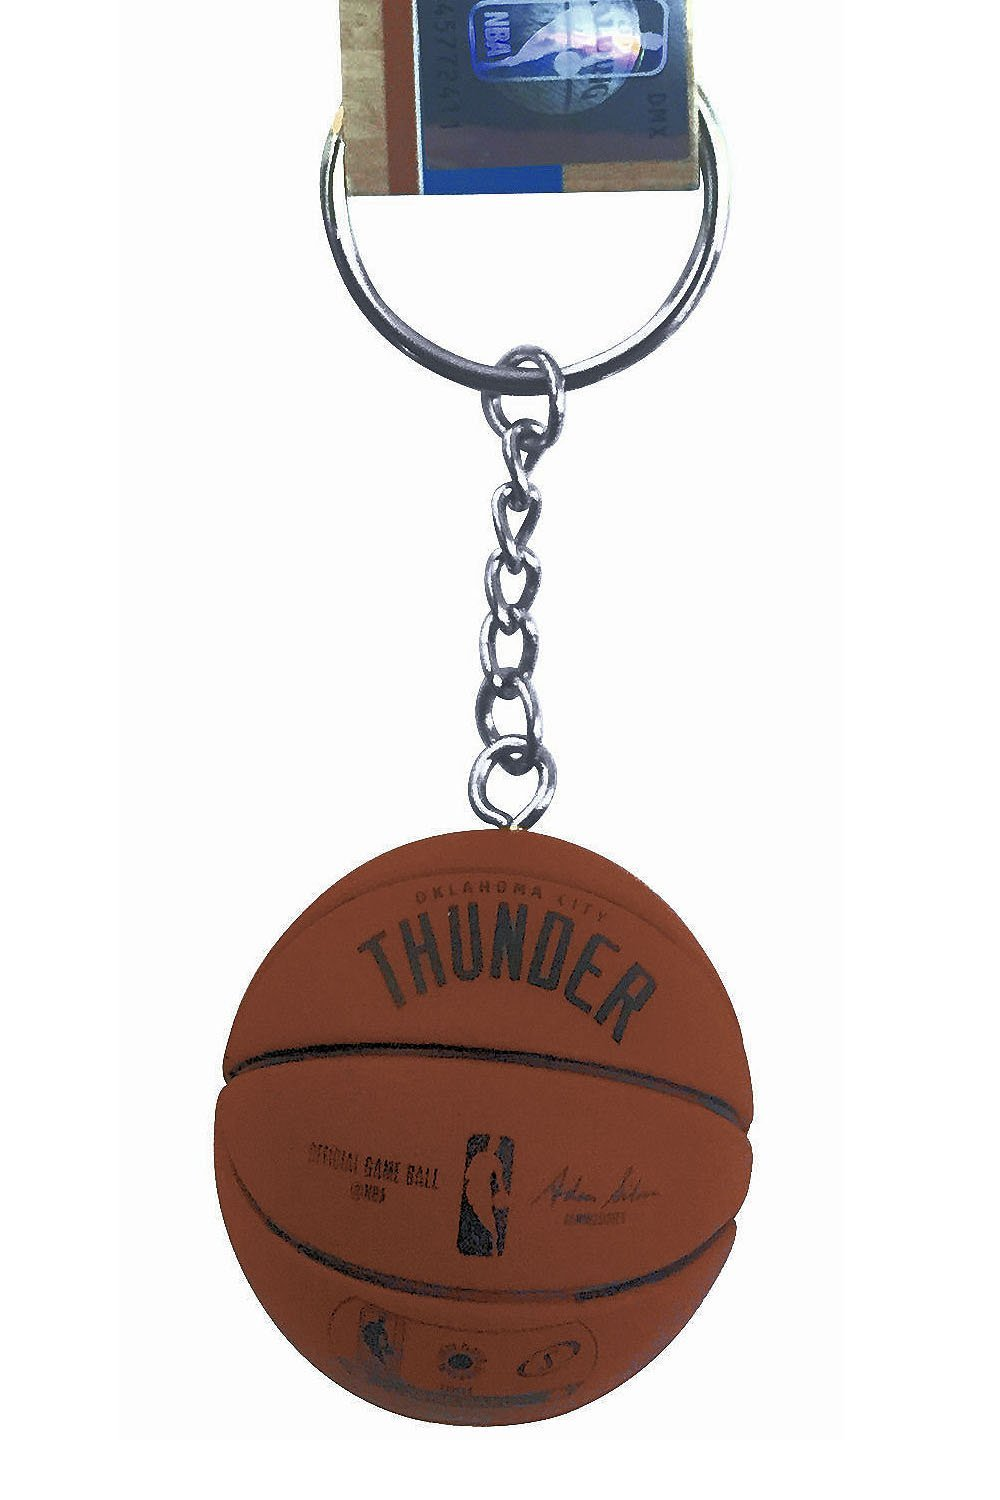 aminco NBA Officially Licensed Mini Spalding Basketball Keychain